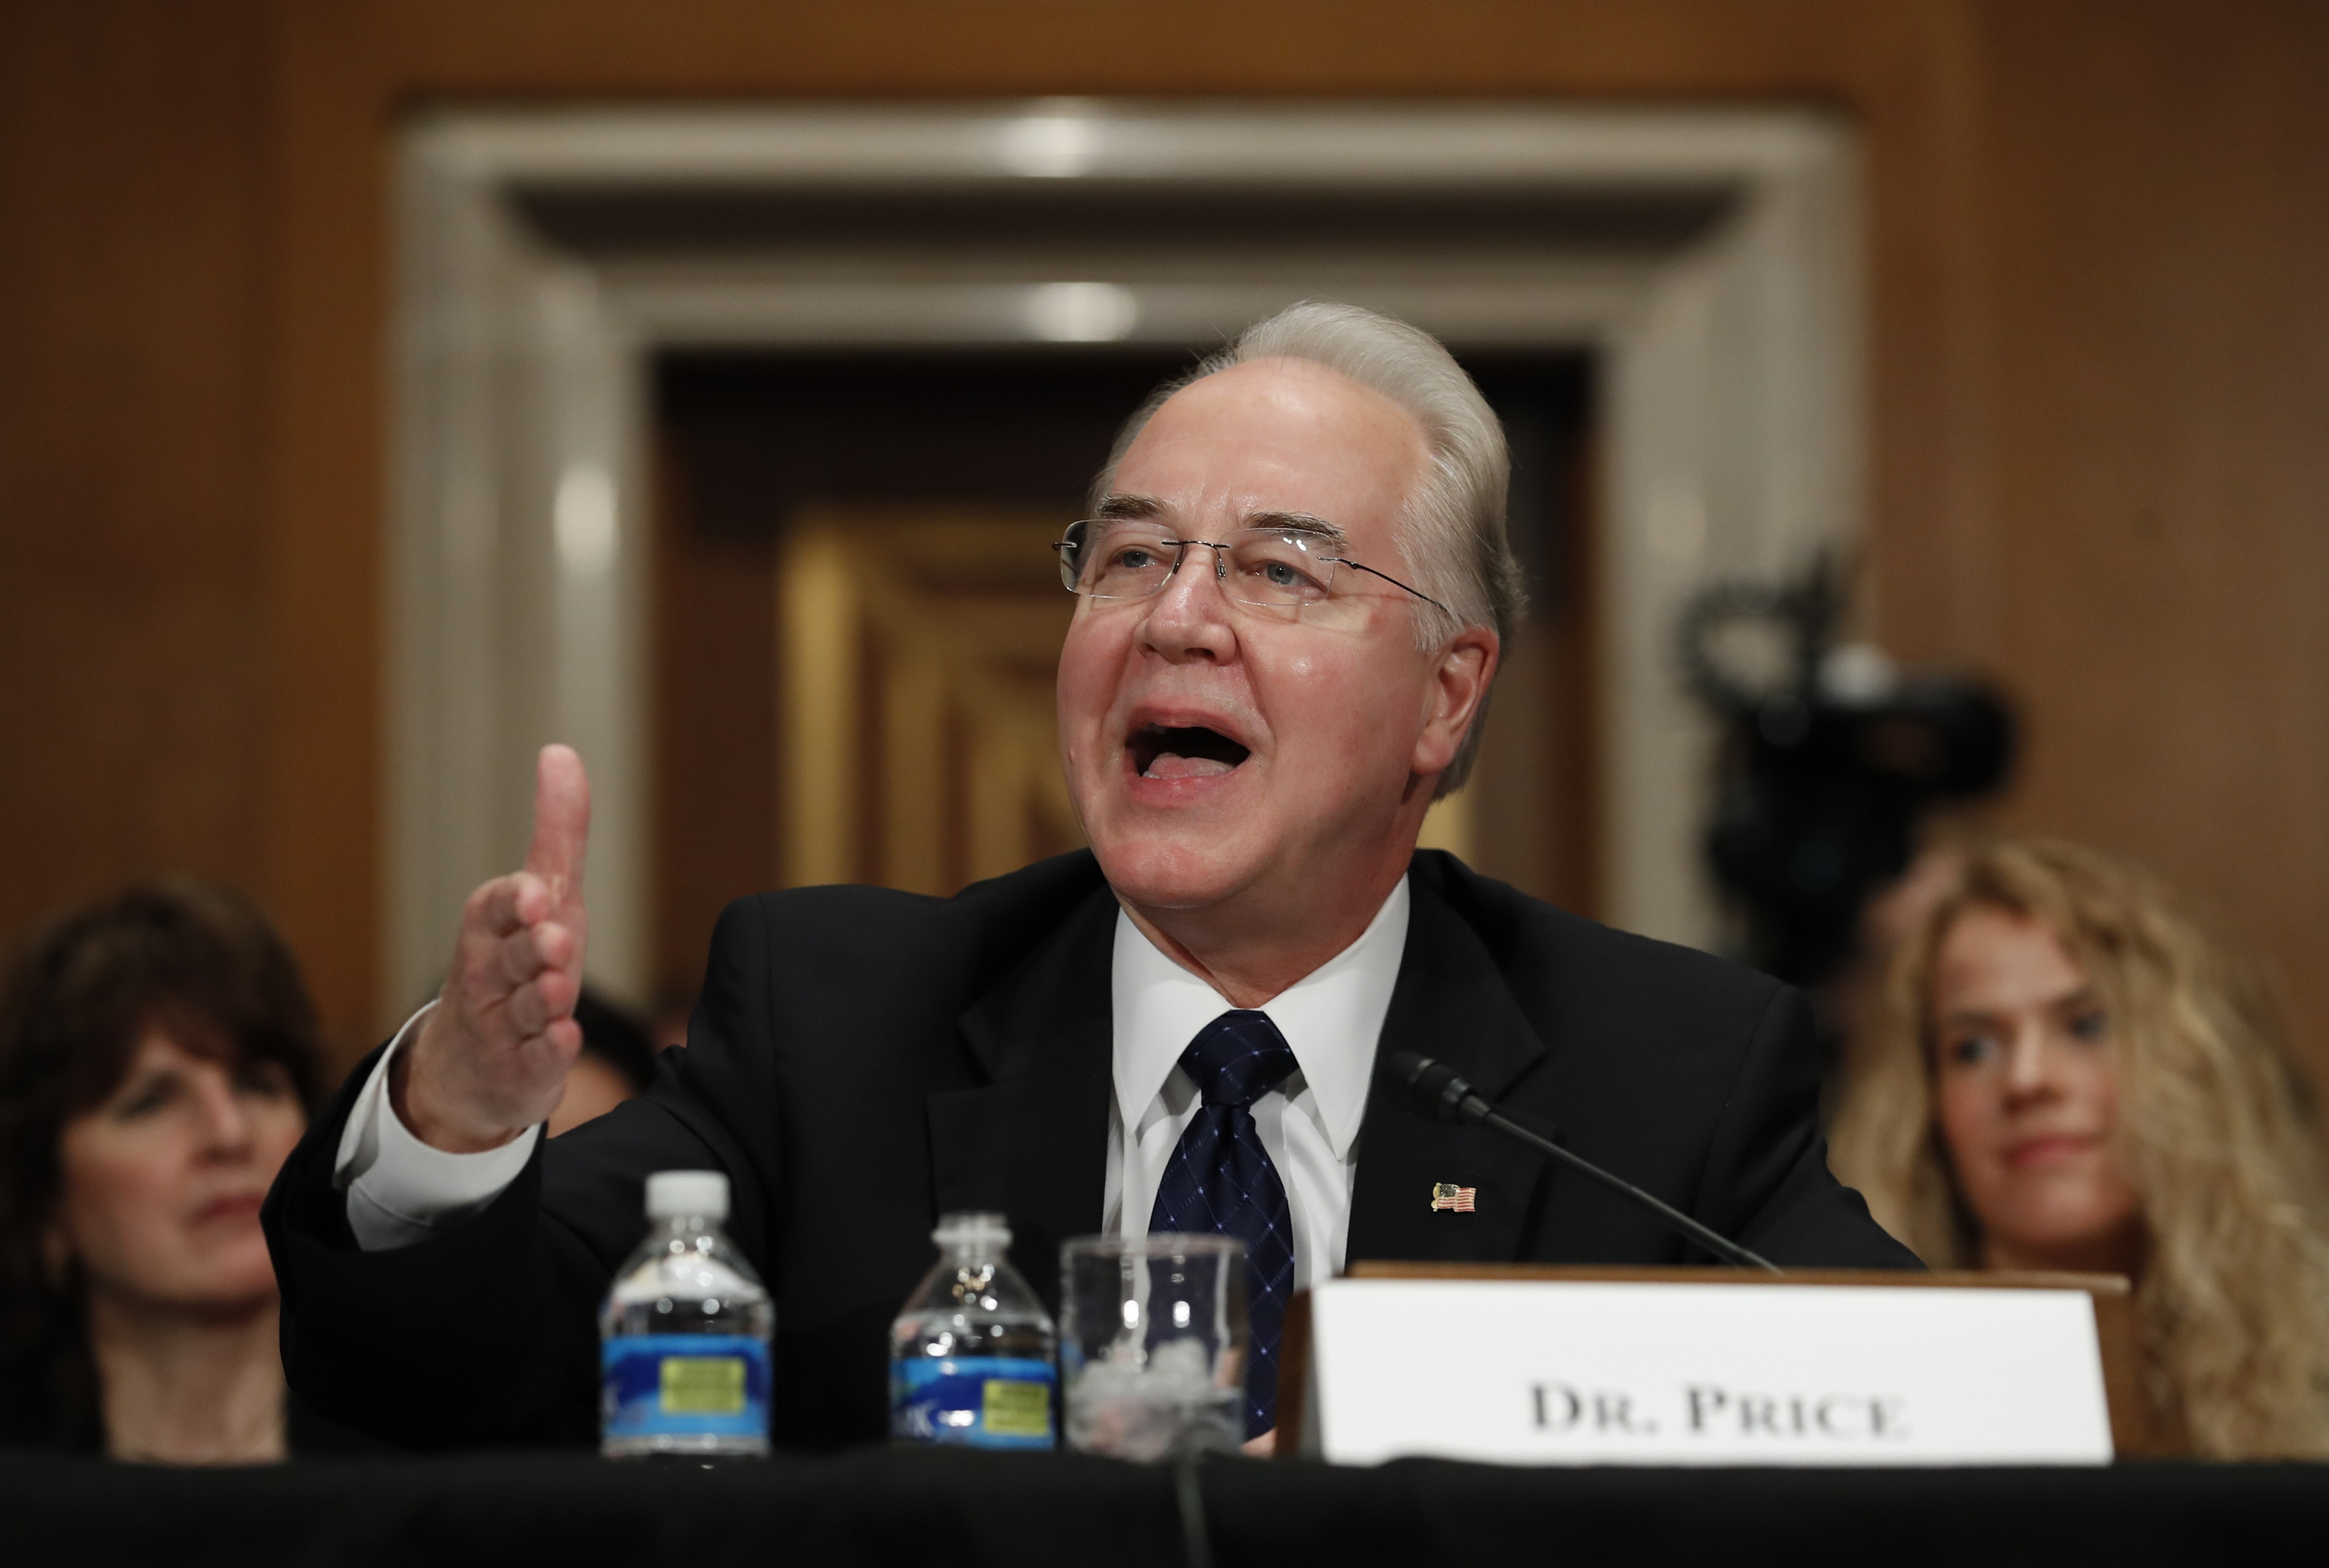 Donald Trump Gives His HHS Nominee Tom Price an Obamacare Makeover